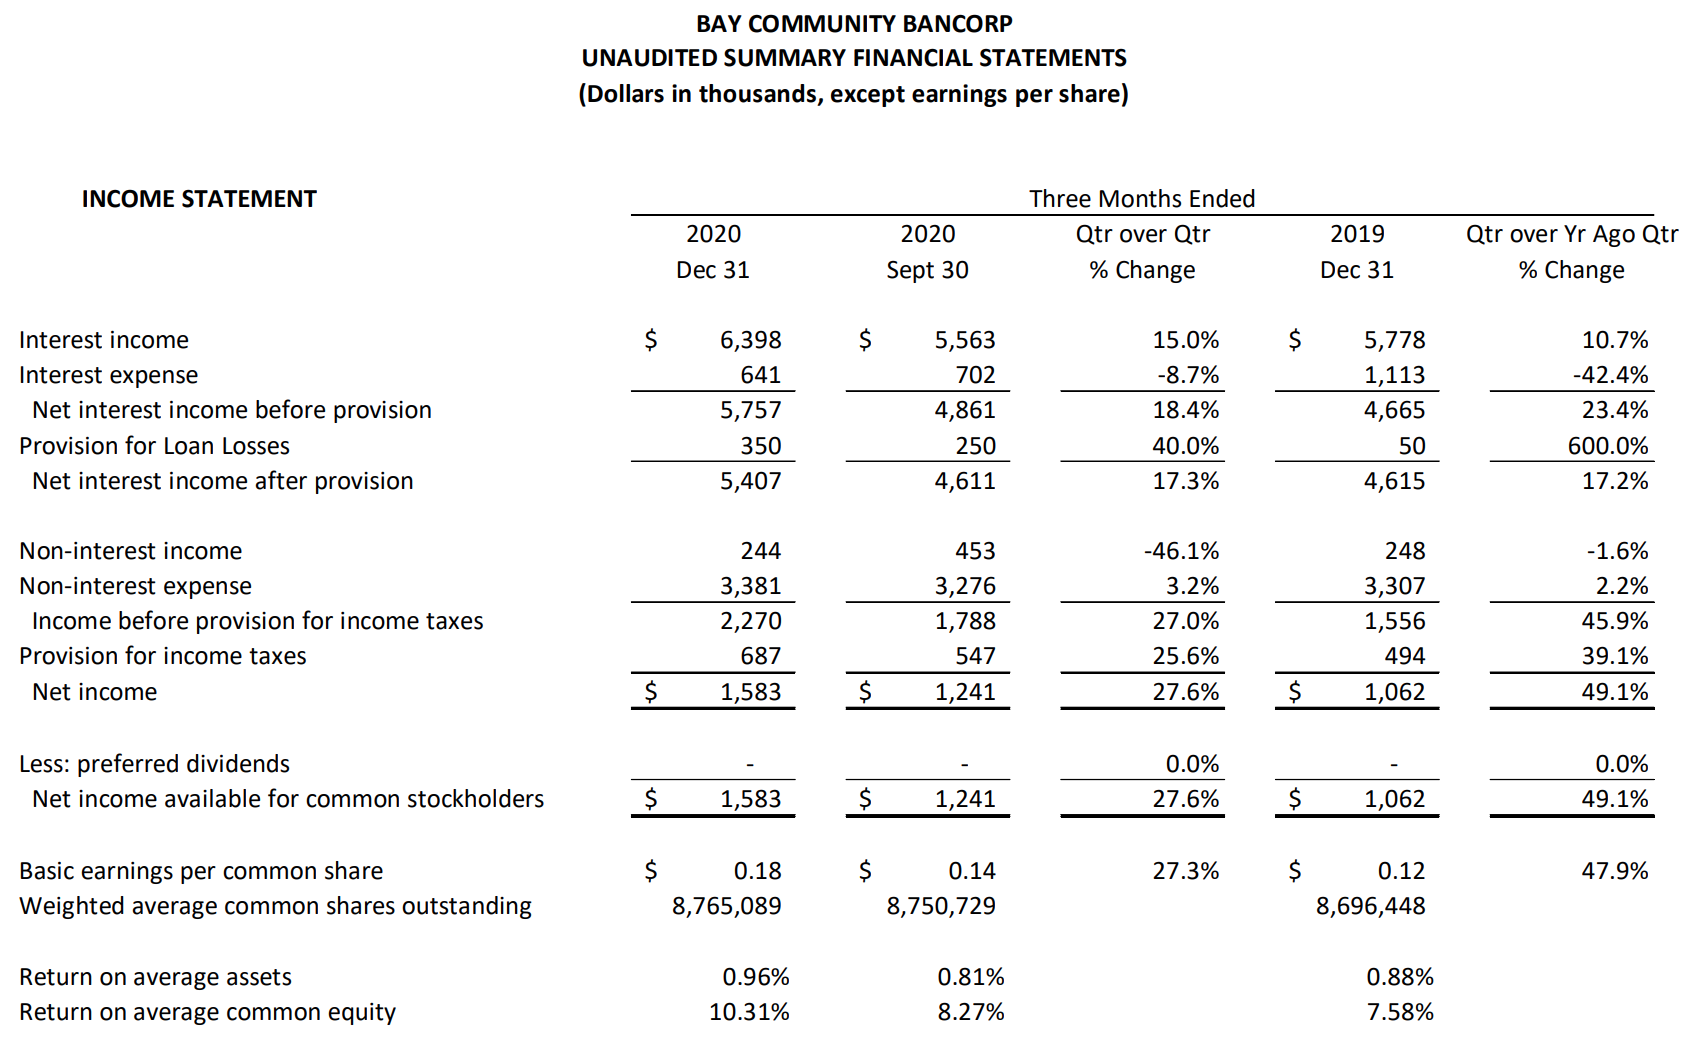 BAY COMMUNITY BANCORP UNAUDITED SUMMARY FINANCIAL STATEMENTS Table pt 1